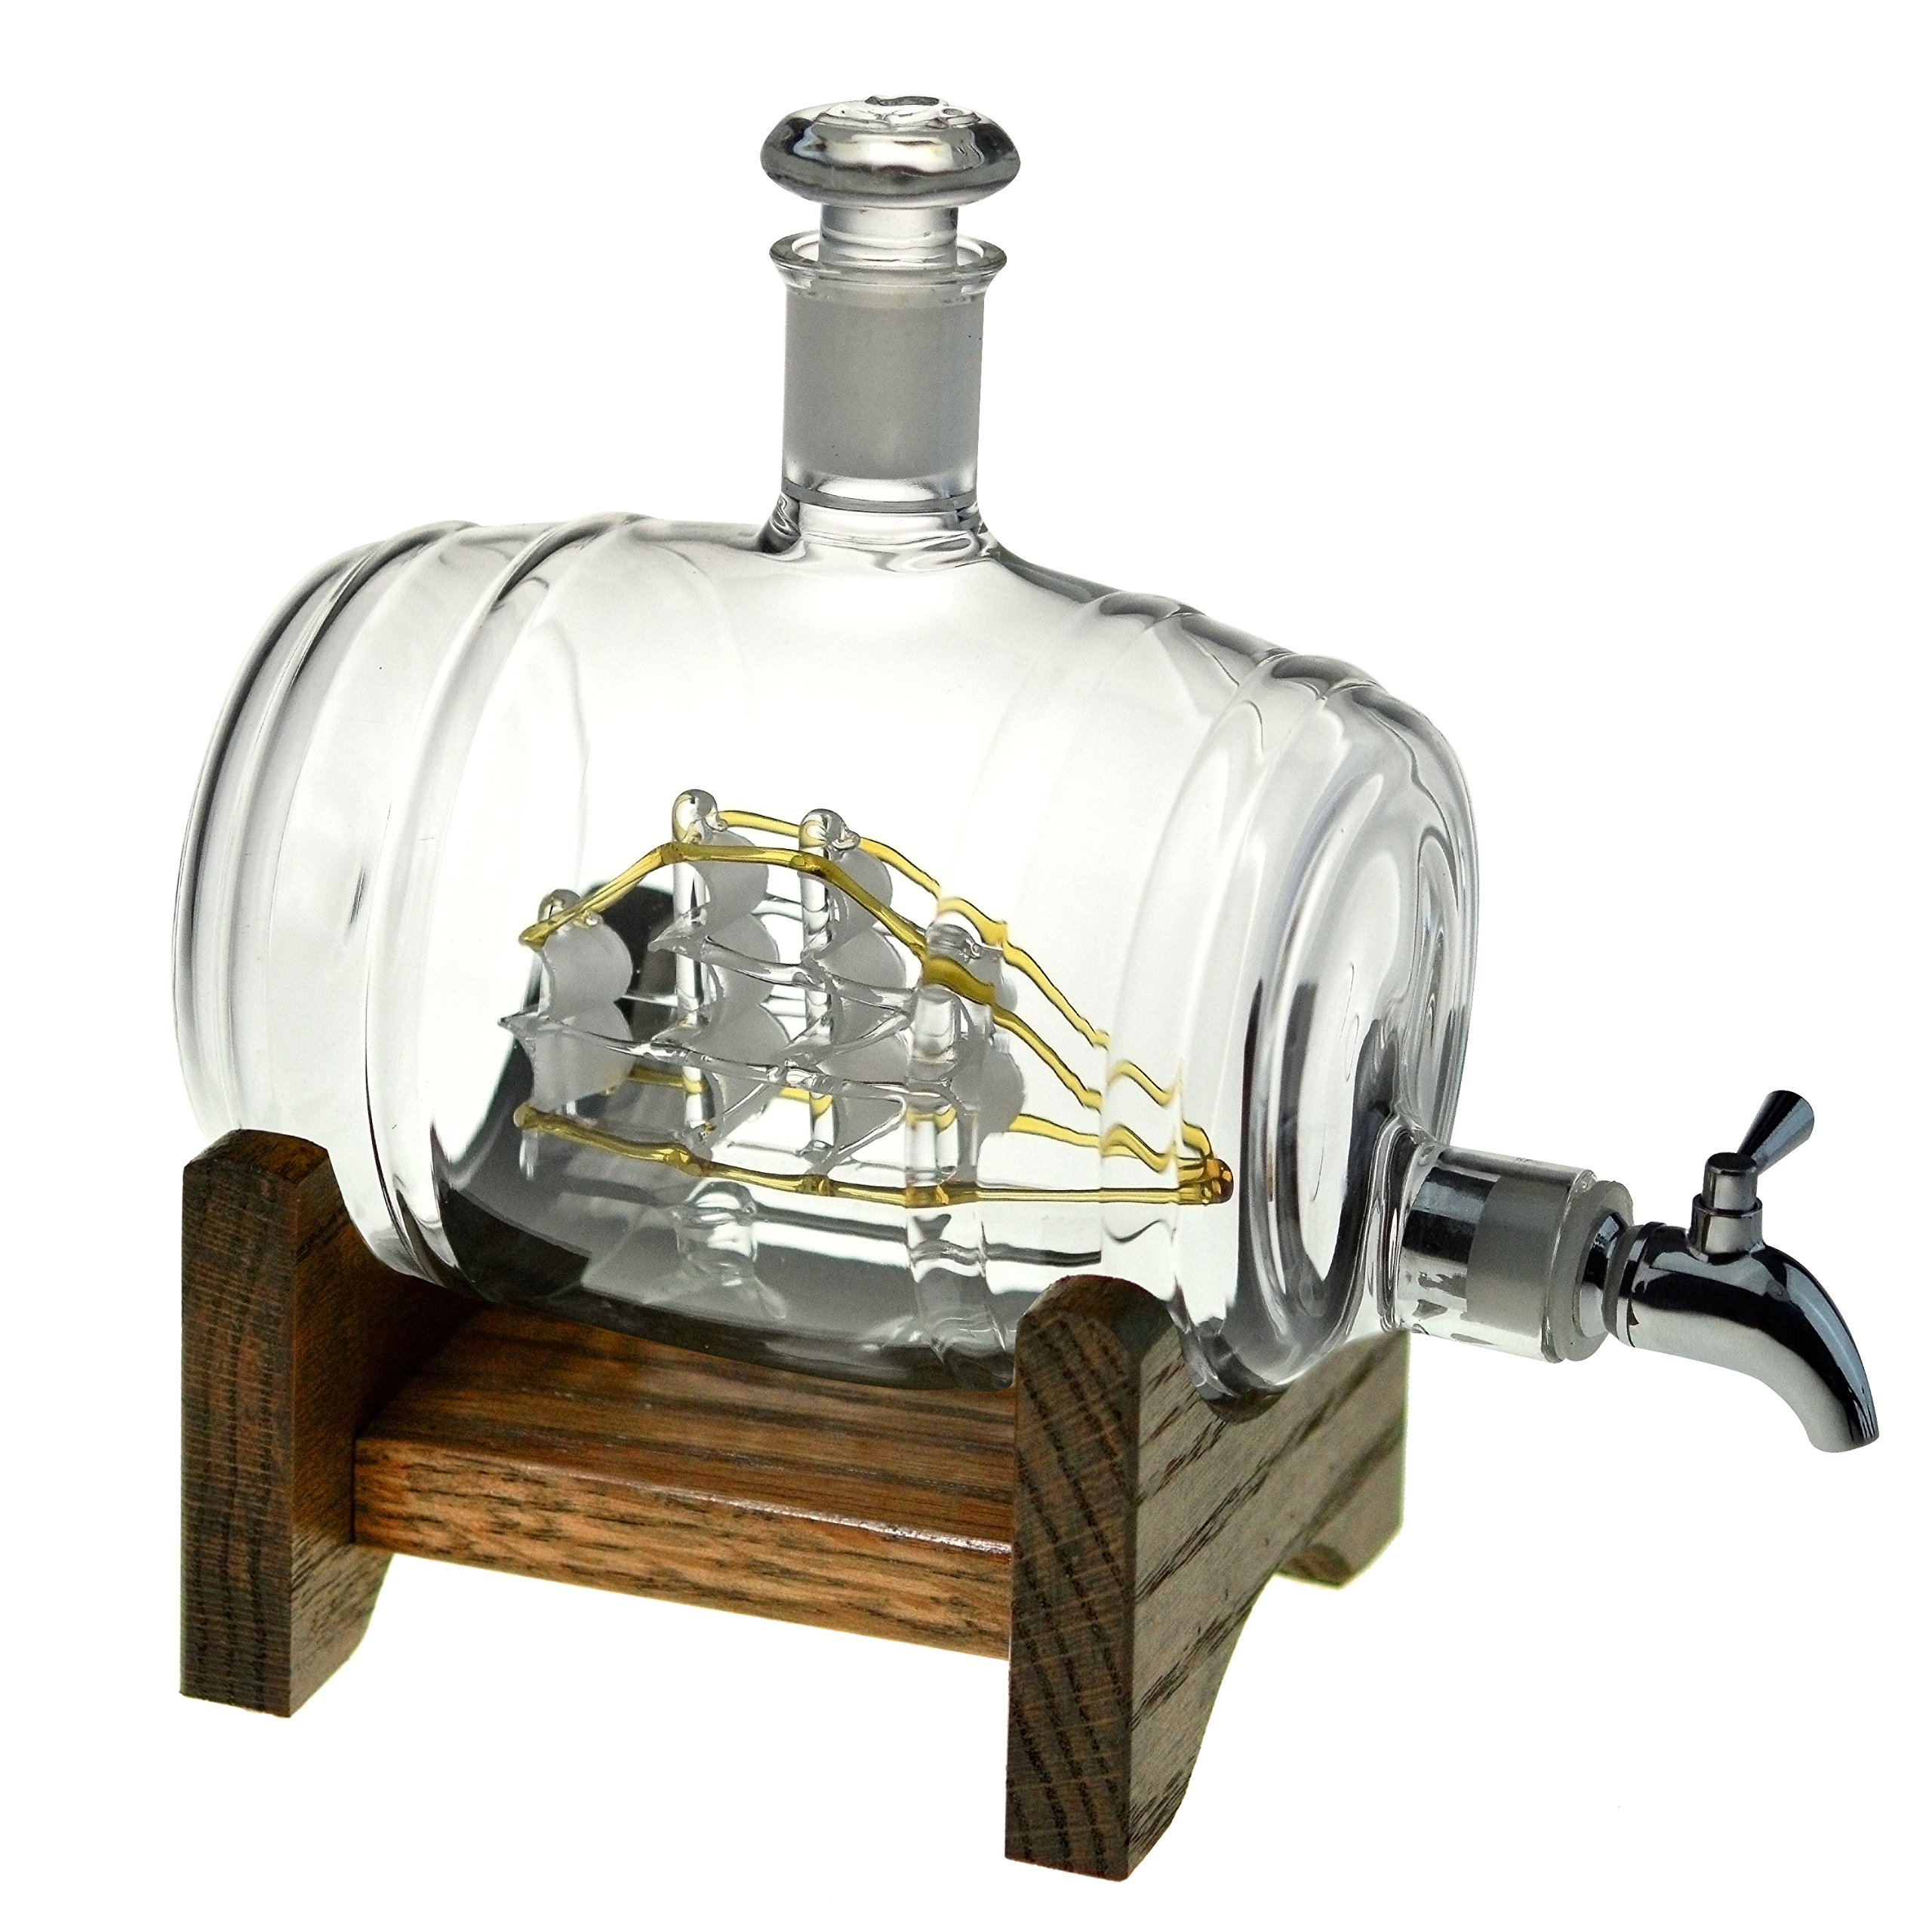 Bourbon Barrel Whiskey Decanter With Ship - 1000ml Liquor Dispenser - Sailing/Boating Gifts for Men and Women, Nautical Decor Retirement Gift (Tomoka Gold) by Prestige Decanters